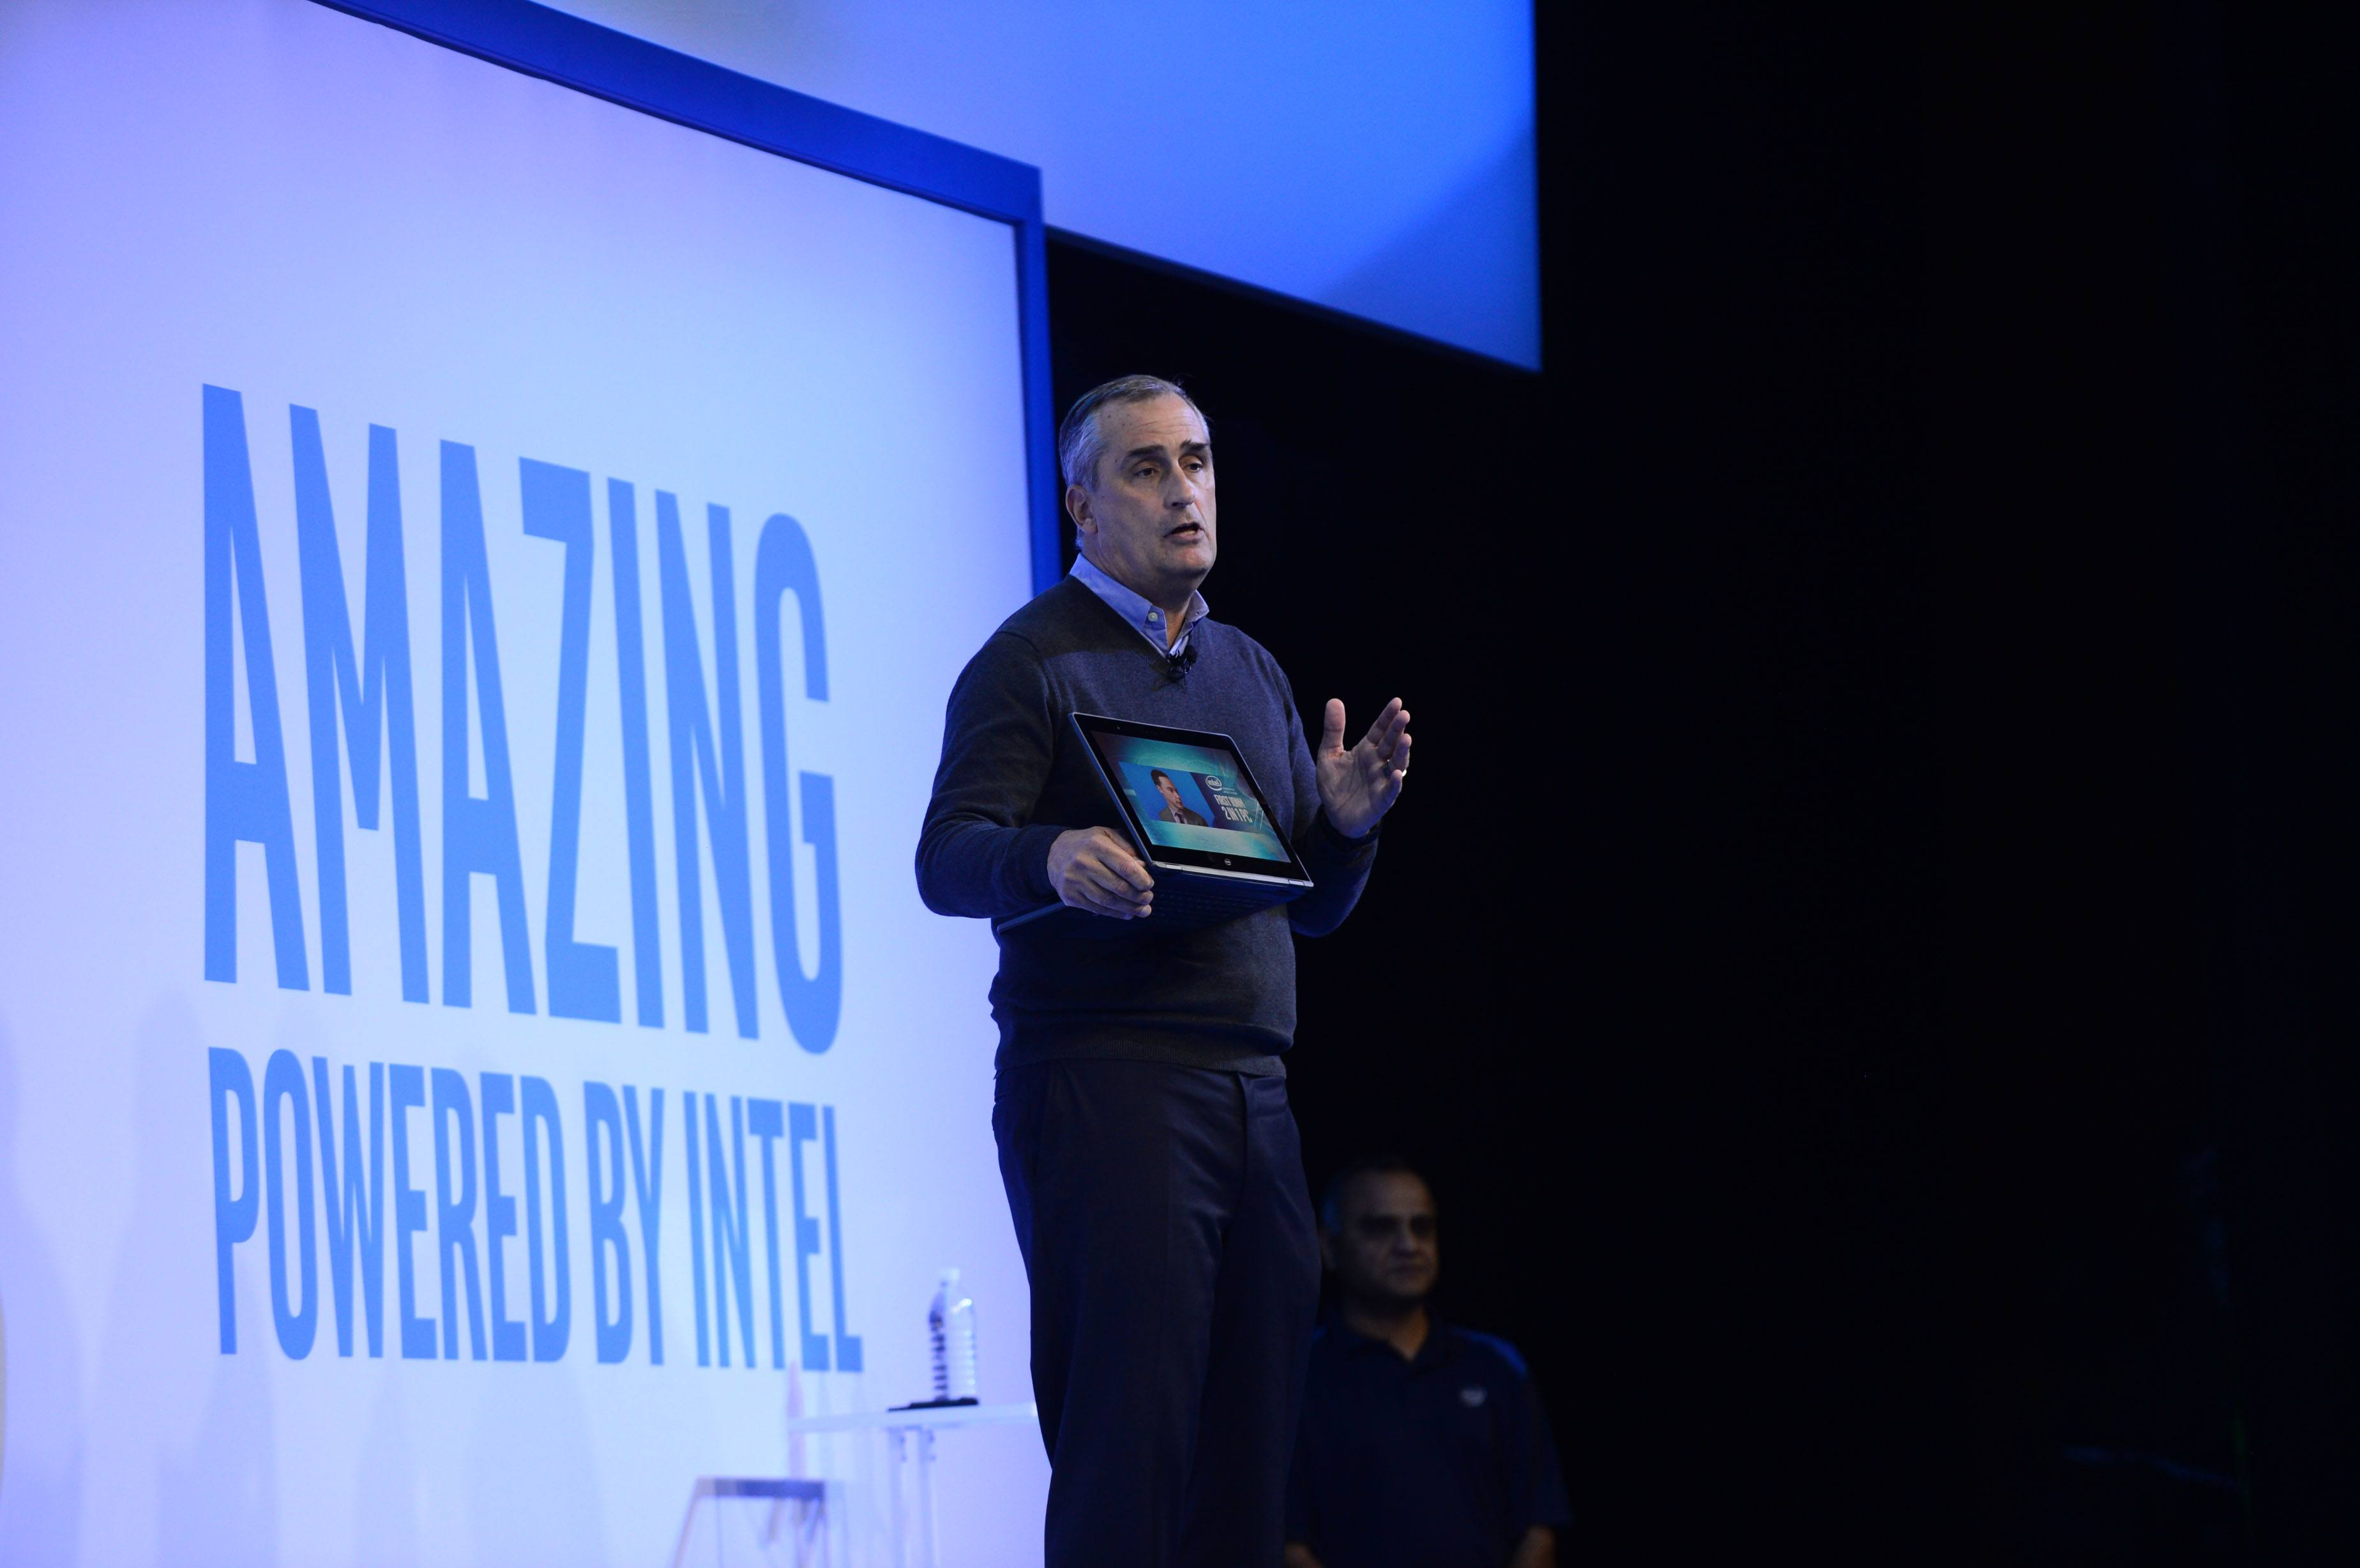 Brian Krzanich, Intel chief executive officers, displays a 2 in 1 powered by the company's new 10-nanometer processor during a company news conference on Wednesday, Jan. 4, 2017, in Las Vegas. Intel Corporation presents new technology at the 2017 International Consumer Electronics Show. The event runs from Jan. 5 to Jan. 8, 2017, in Las Vegas. (CREDIT: Walden Kirsch/Intel Corporation)